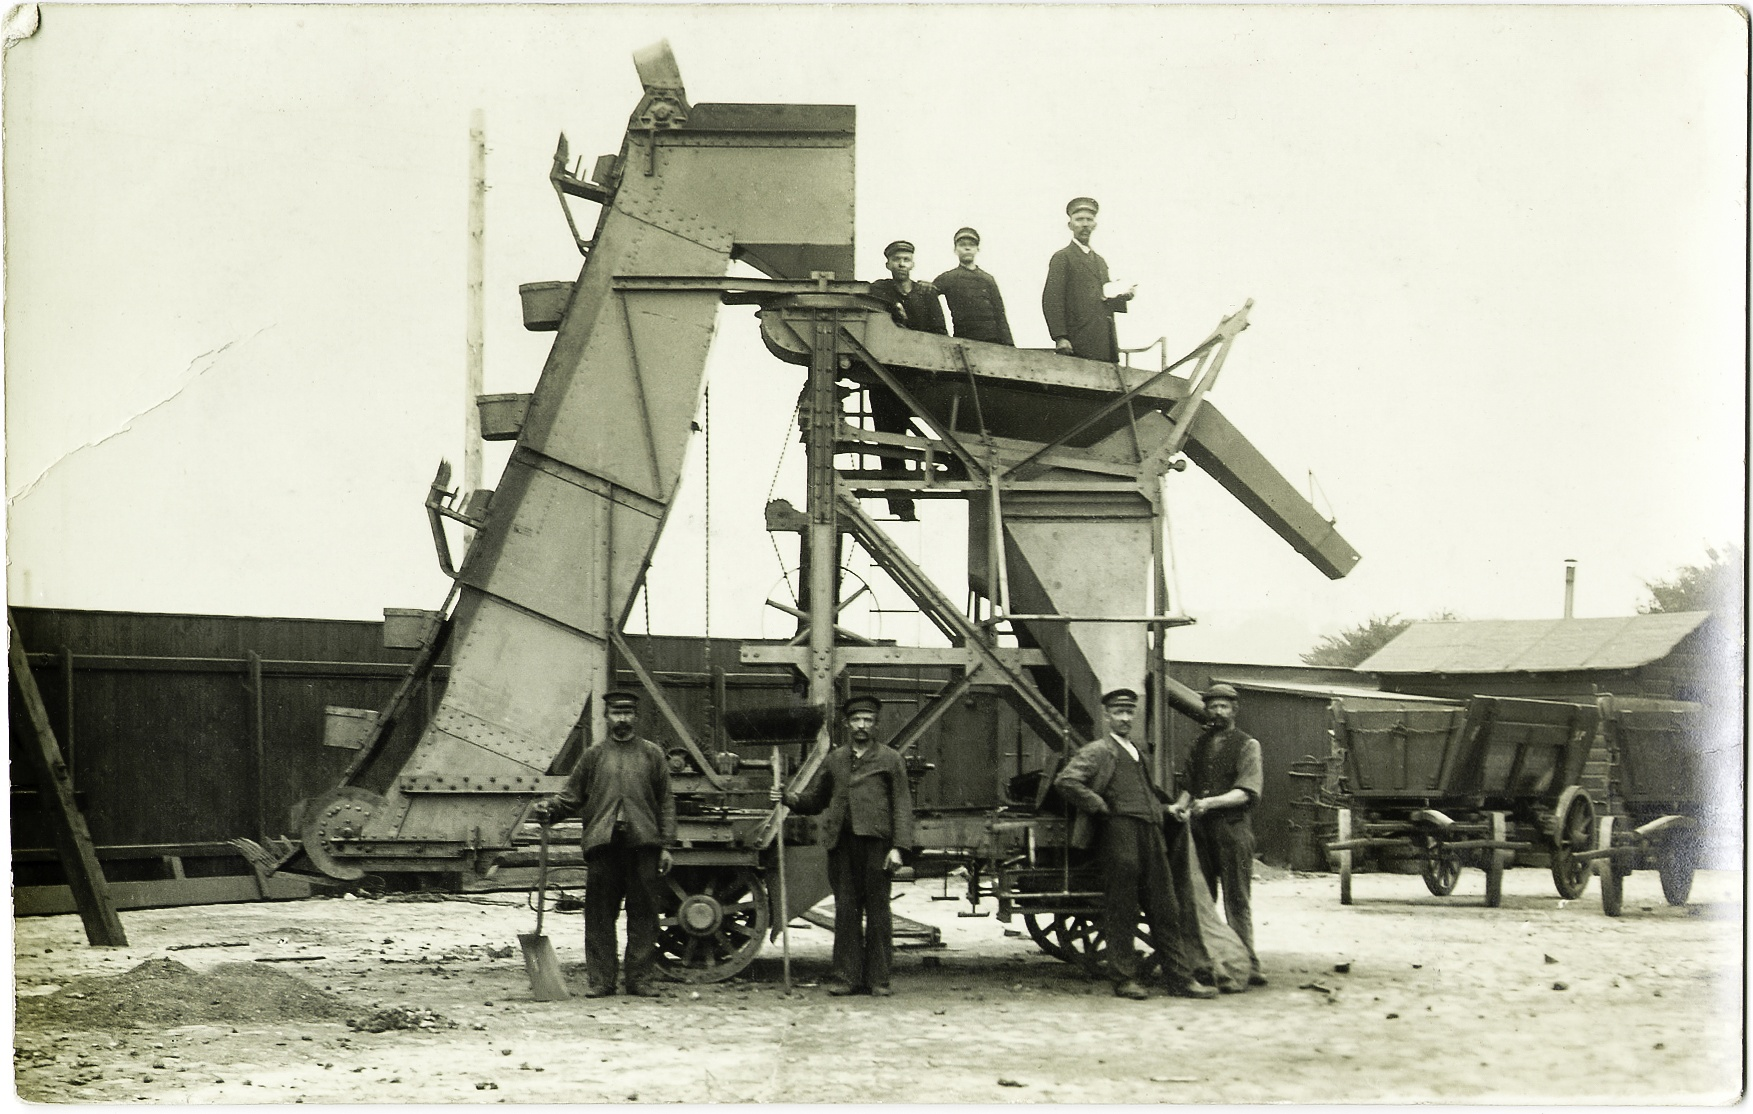 Vintage crusher in a mine, with workers, ca. 1910 by Martine de Lajudie